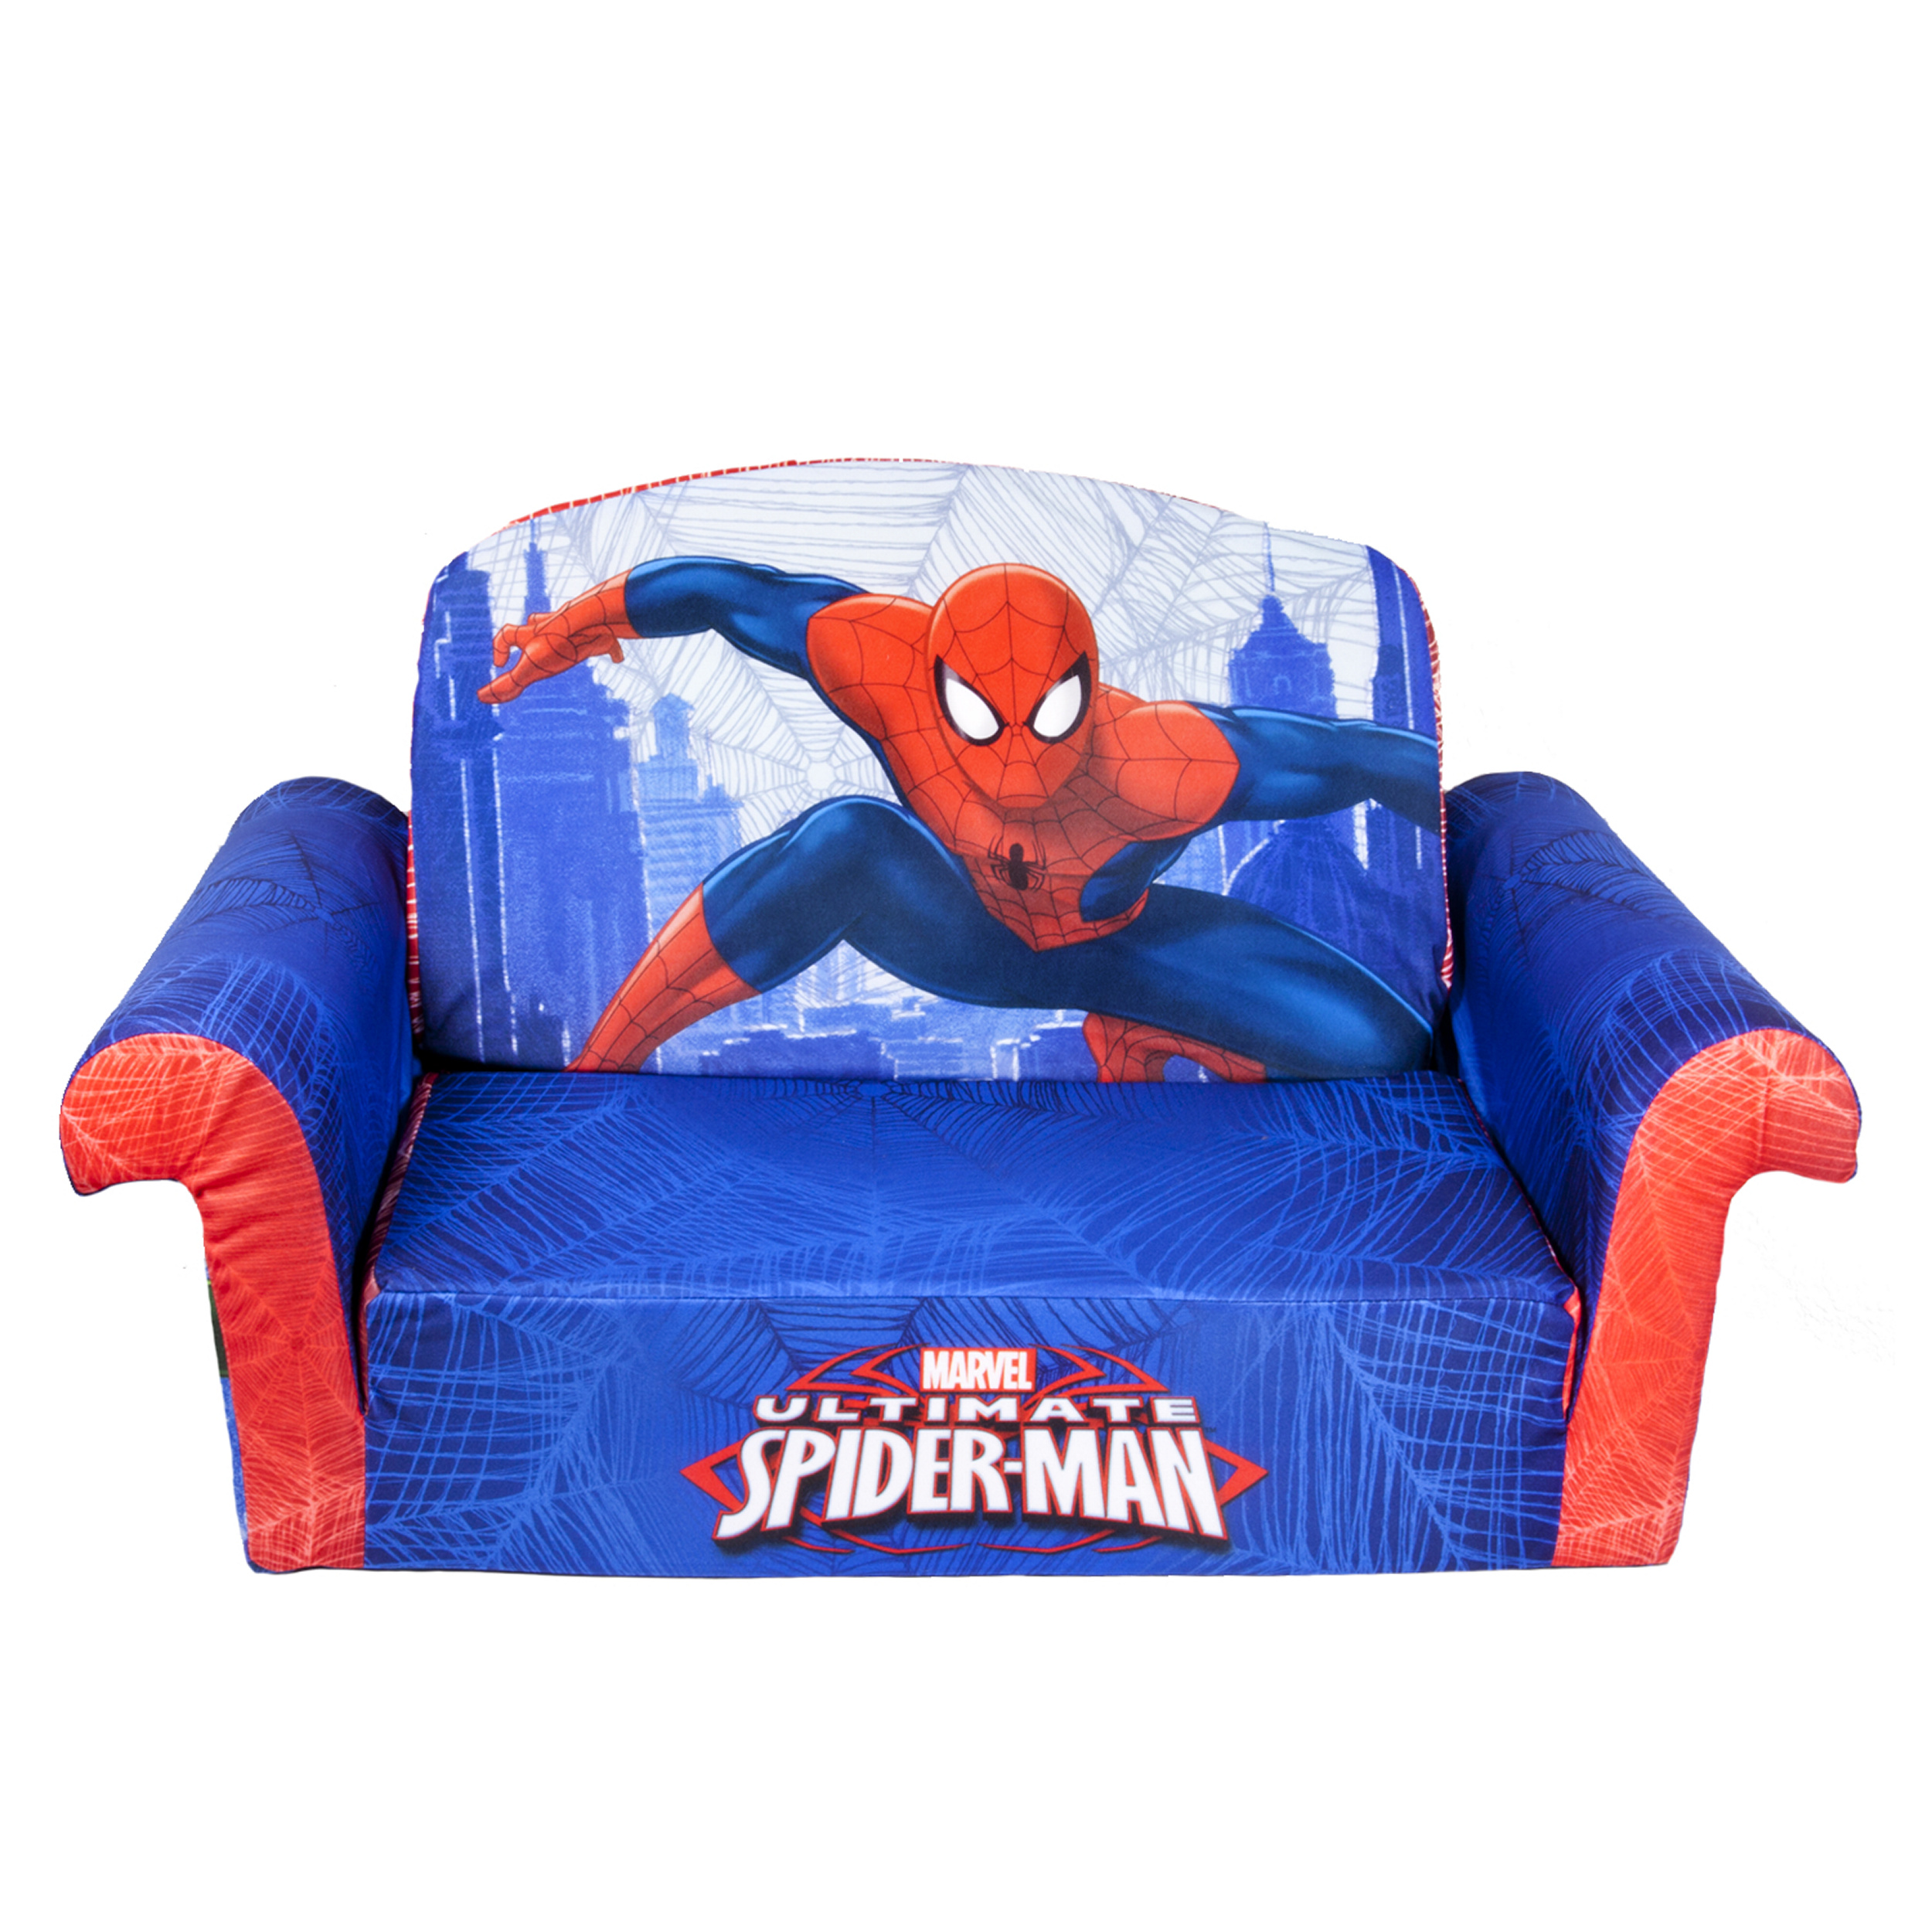 Marshmallow Furniture, Children's Upholstered 2 in 1 Flip Open Sofa, Marvel Spiderman, by Spin Master